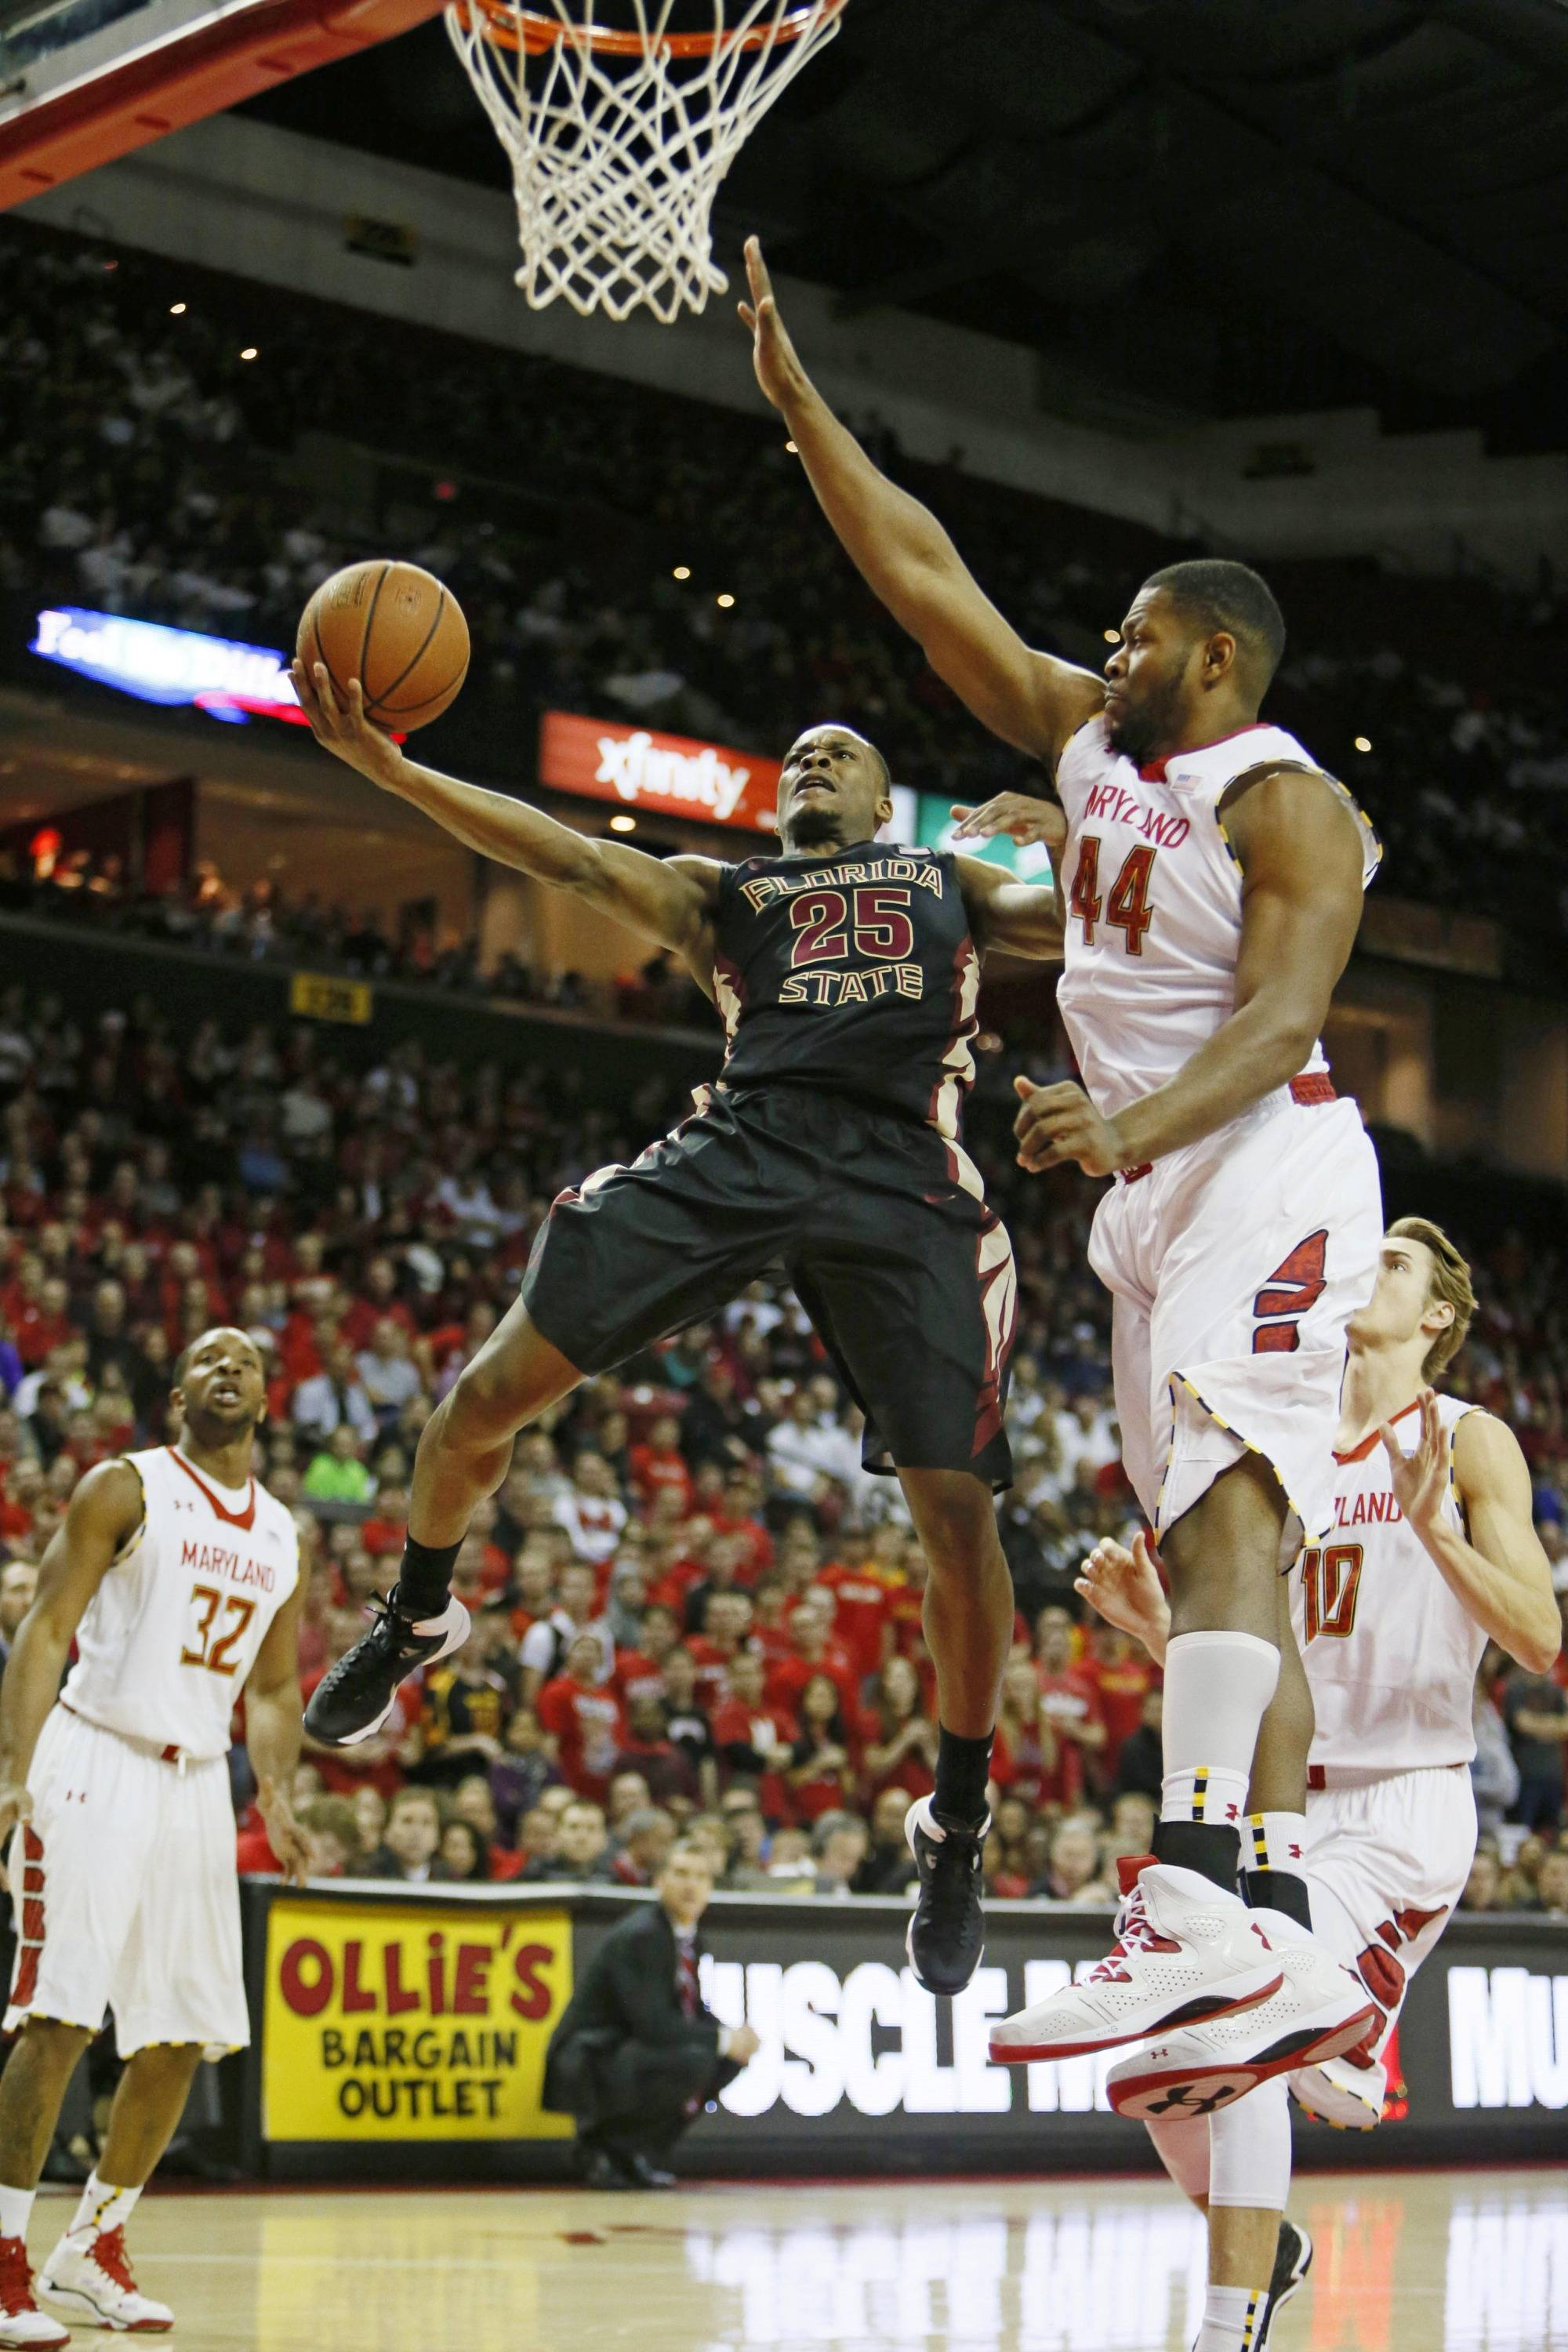 Feb 8, 2014; College Park, MD, USA; Florida State Seminoles forward Aaron Thomas (25) shoots while defended by Maryland Terrapins forward Shaquille Cleare (44) at Comcast Center. Mandatory Credit: Mitch Stringer-USA TODAY Sports